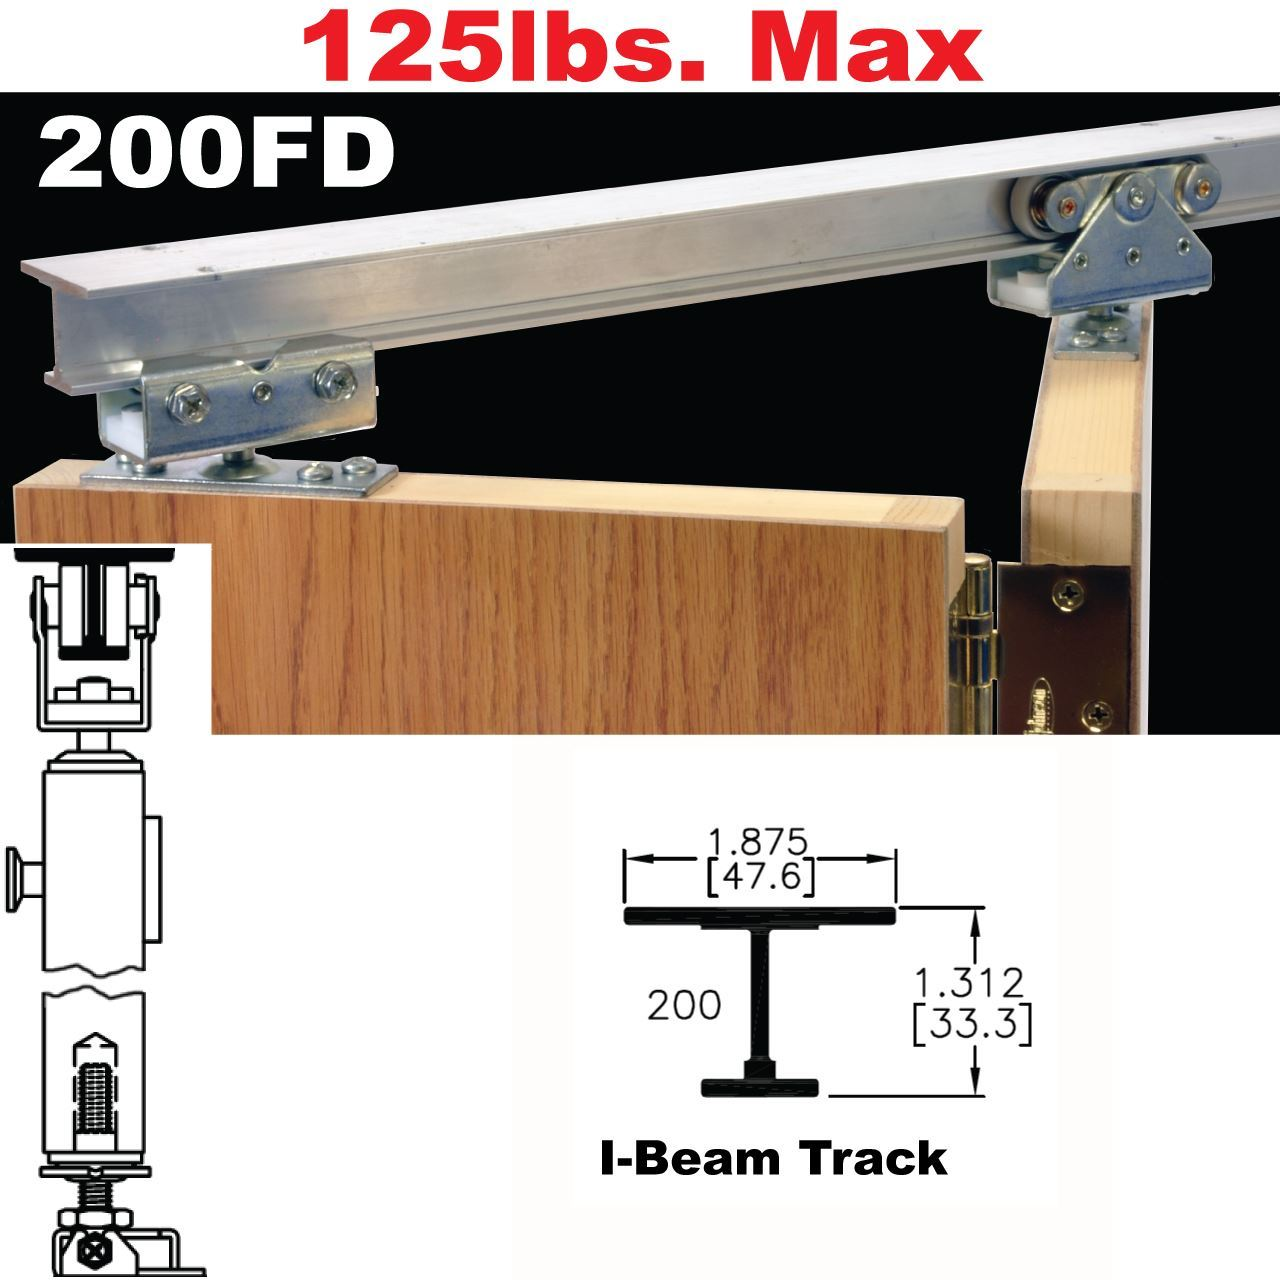 200FD Bi Fold Door Hardware